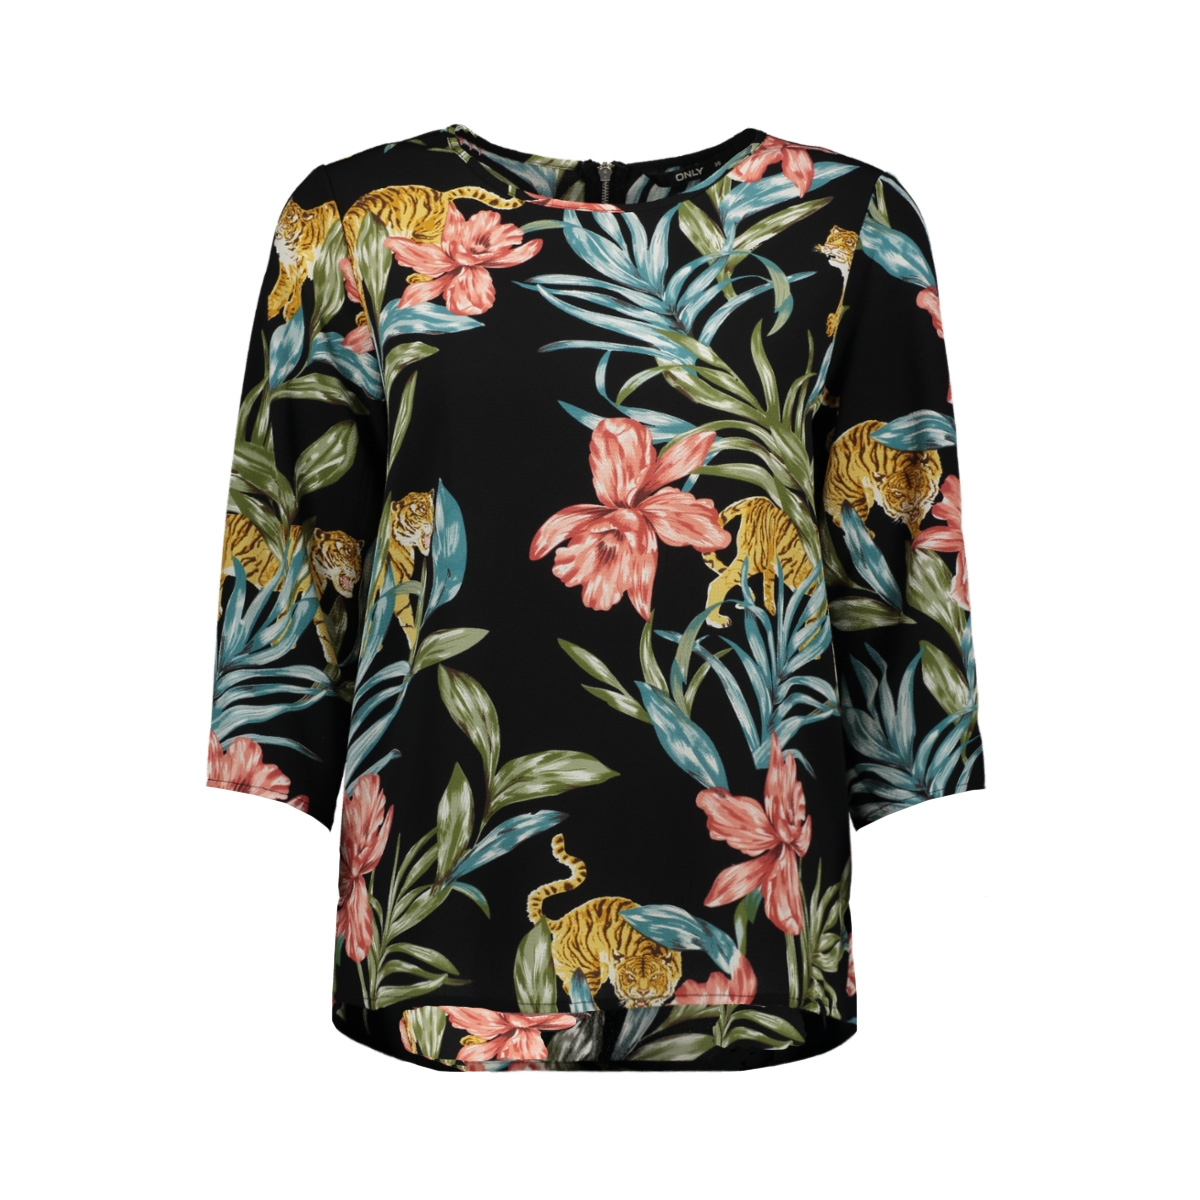 onlnova 3/4 sleeve top aop  lux  wv 15177700 only t-shirt black/jungle zoo